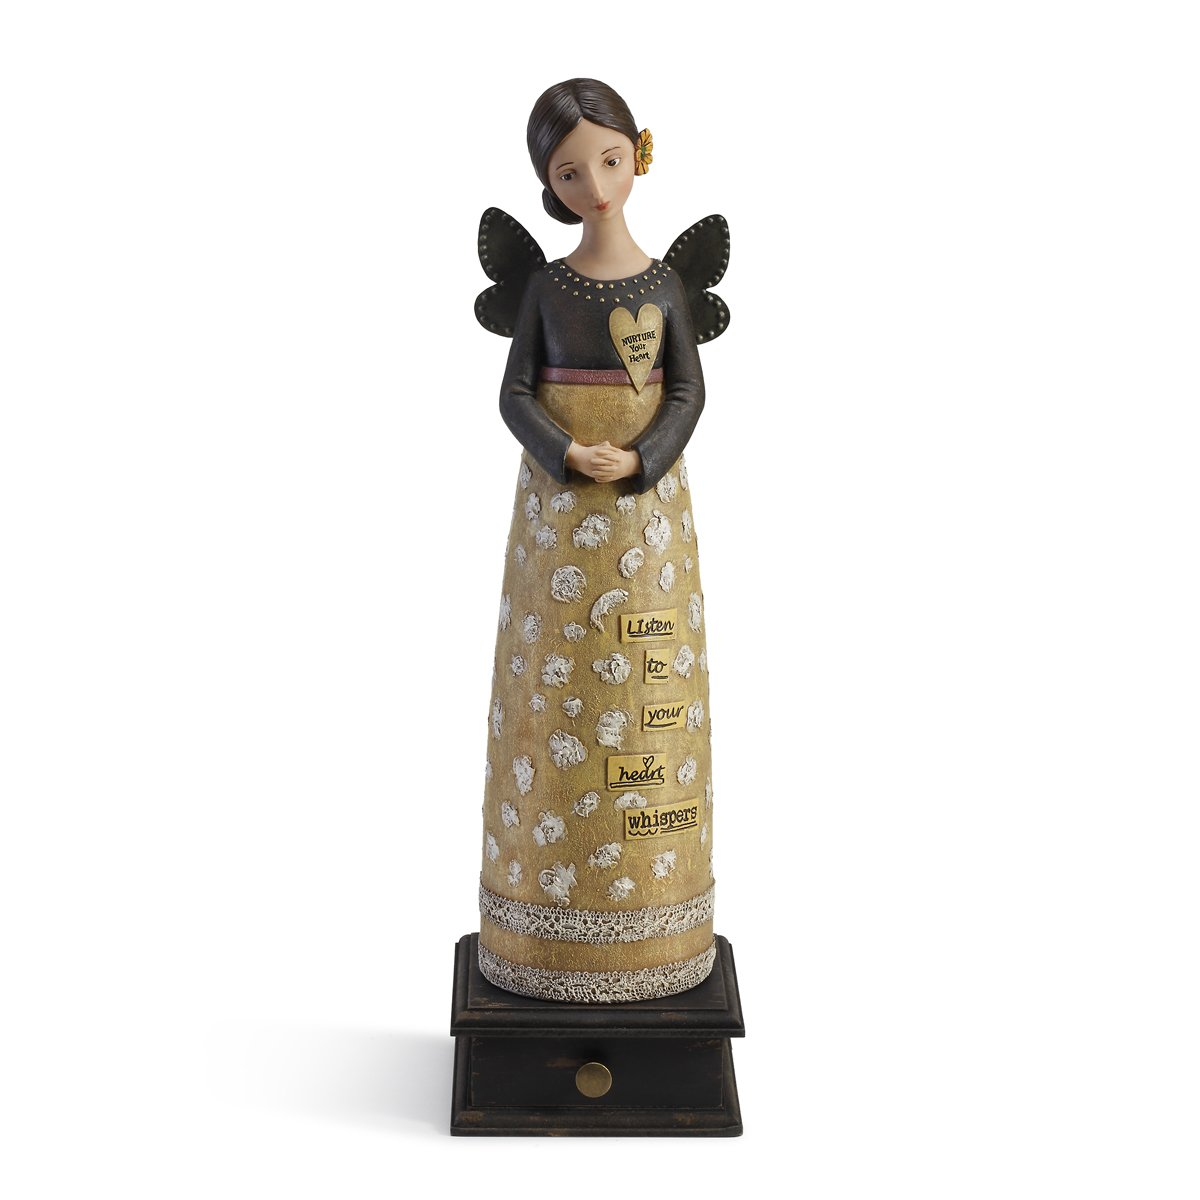 Demdaco Kelly Rae Roberts Heart Whispers Angel figure 1002720221